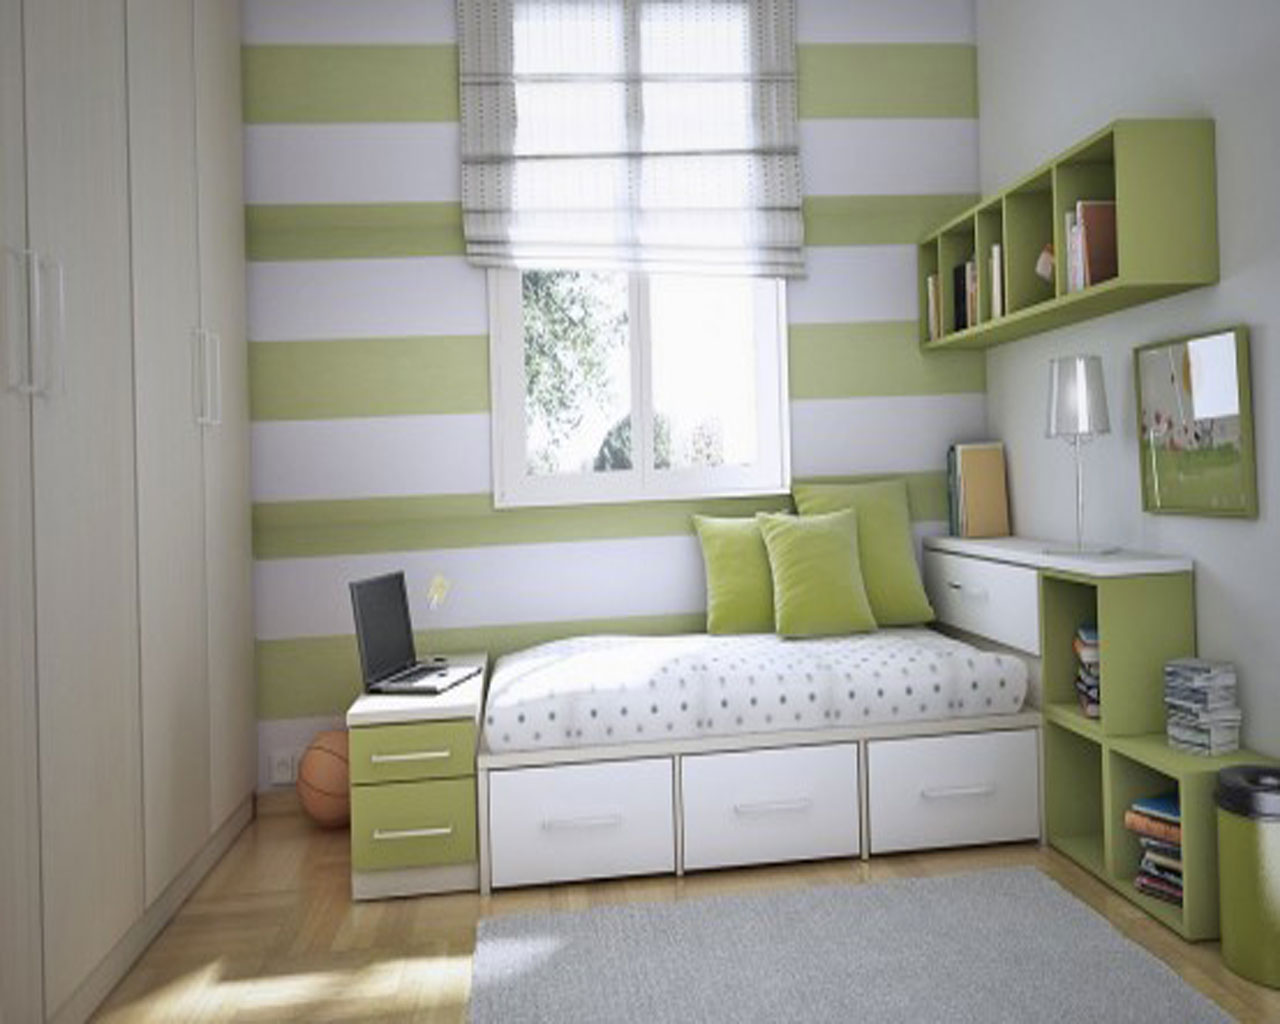 Best kids room design ideas times news uk for Room decor ideas storage